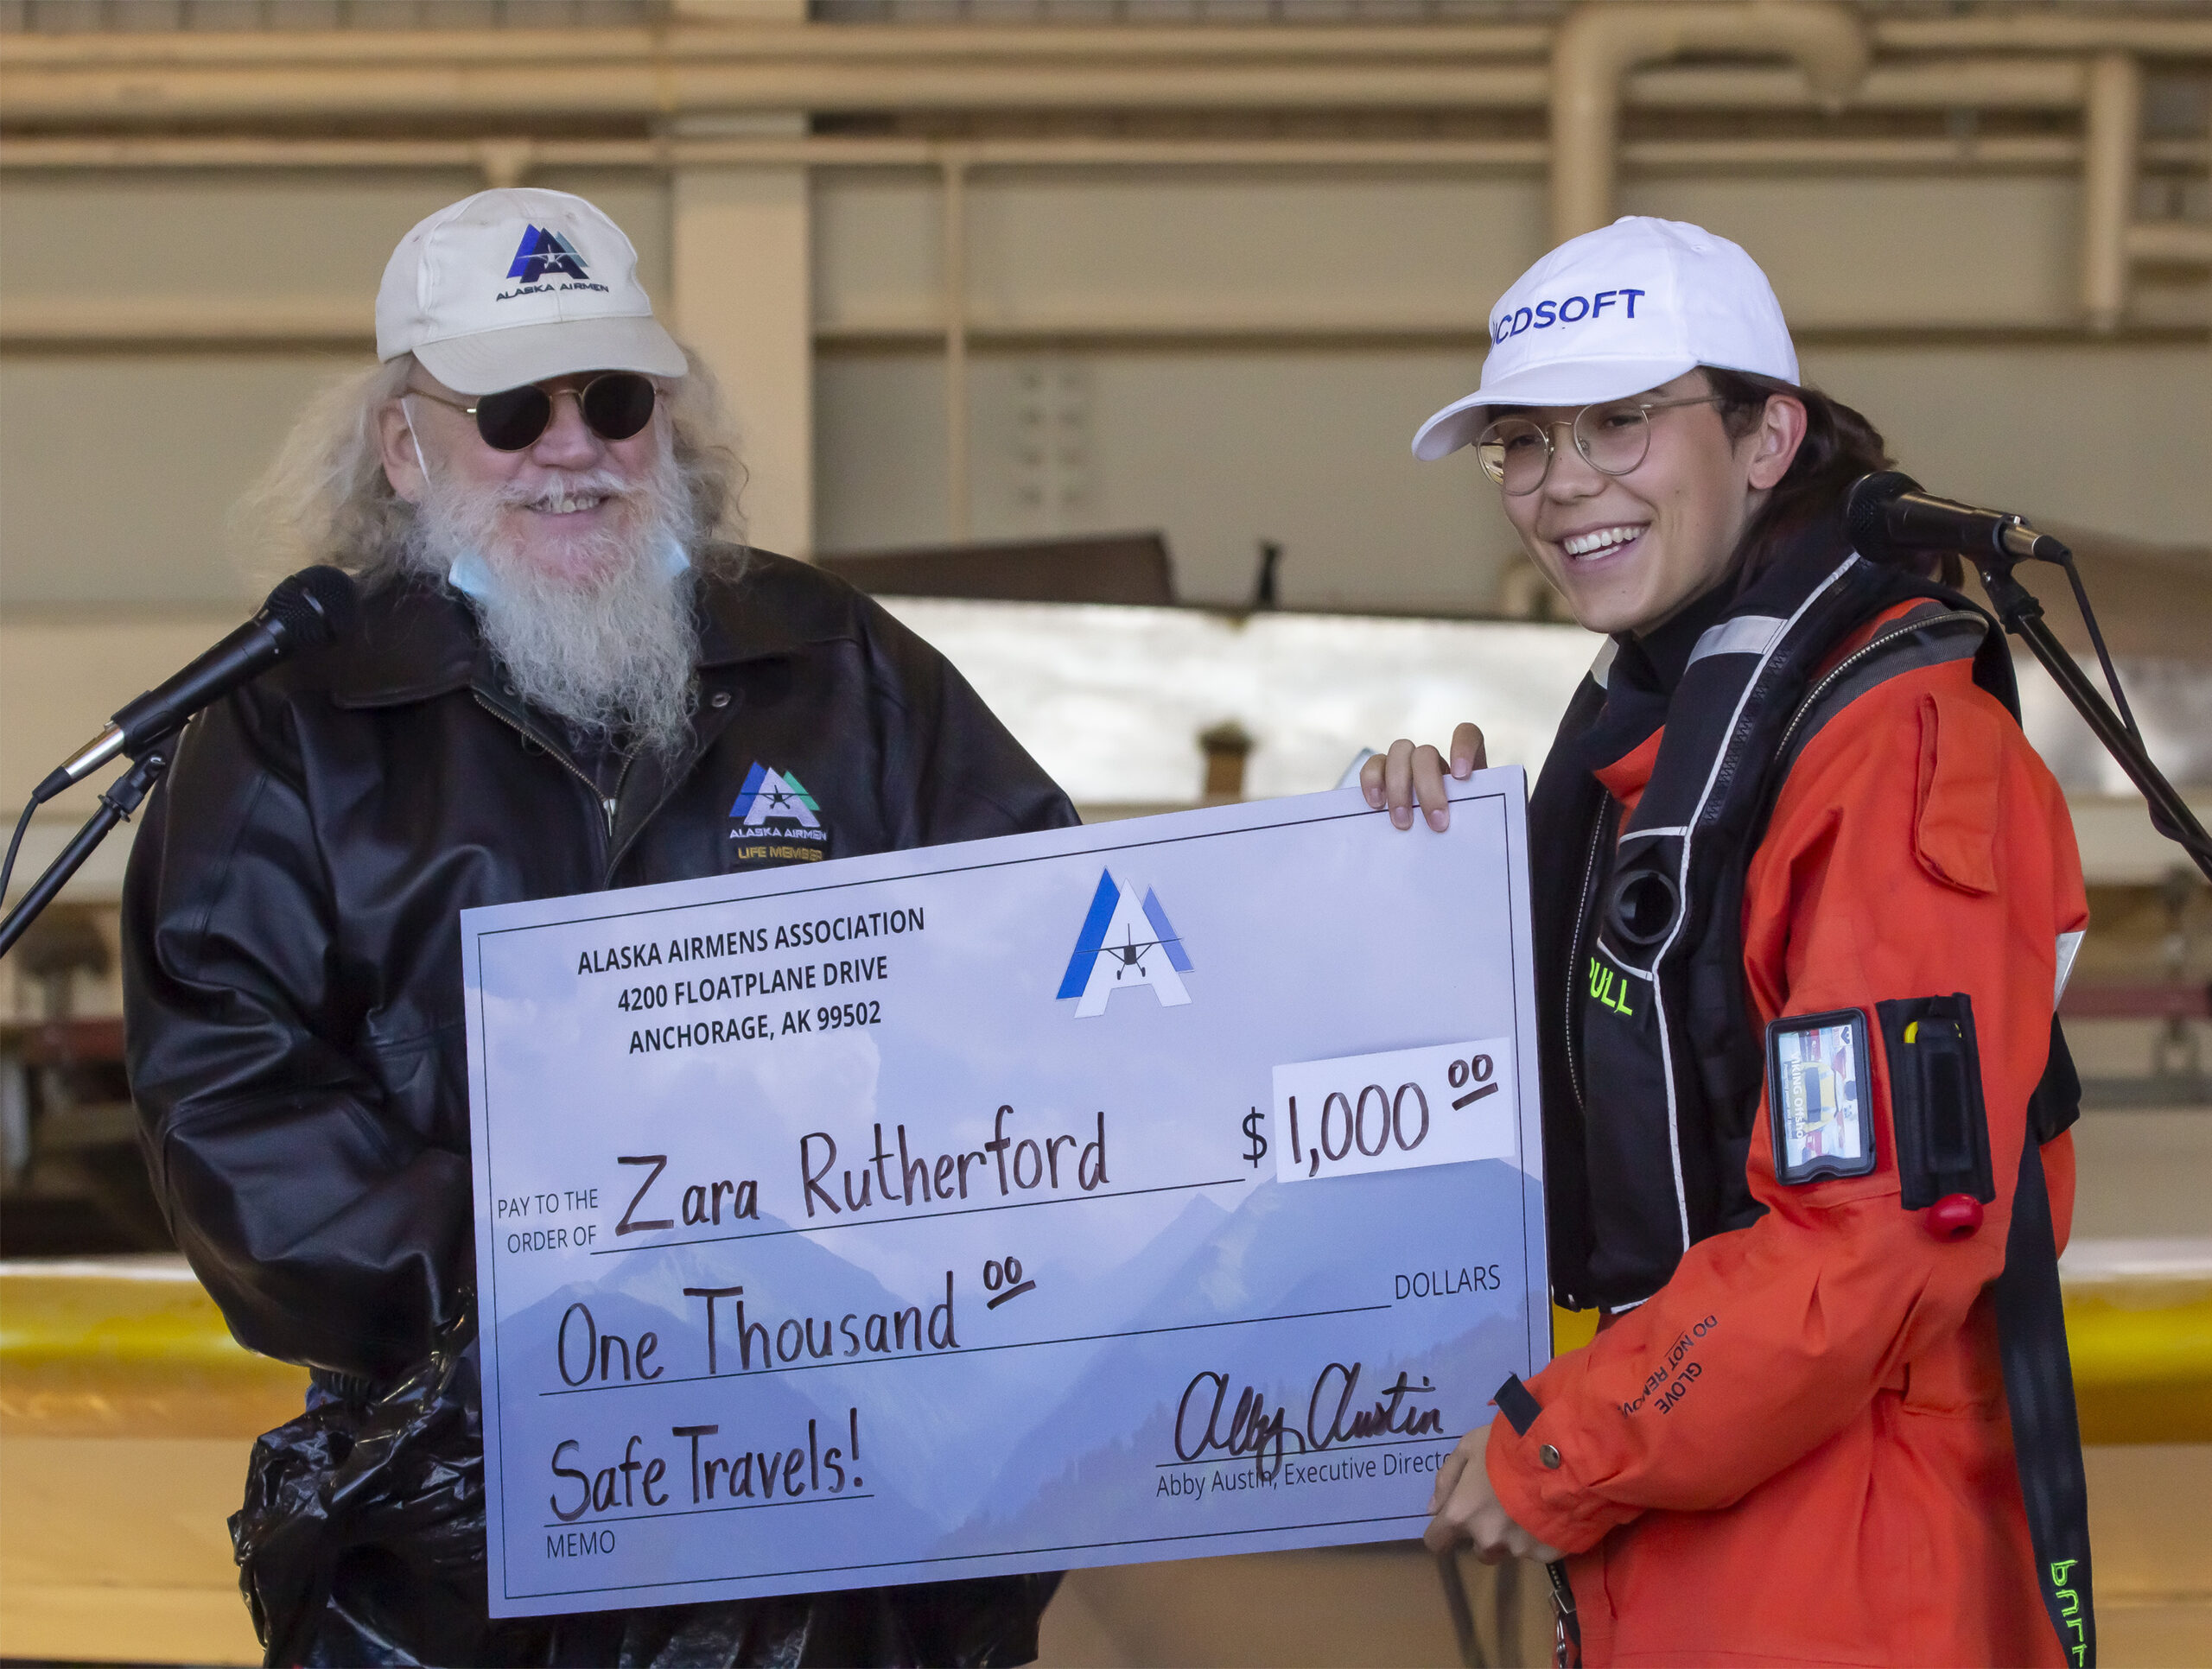 John Dahlen, right and Zara Rutherford right with a check for one thousand dollars USD